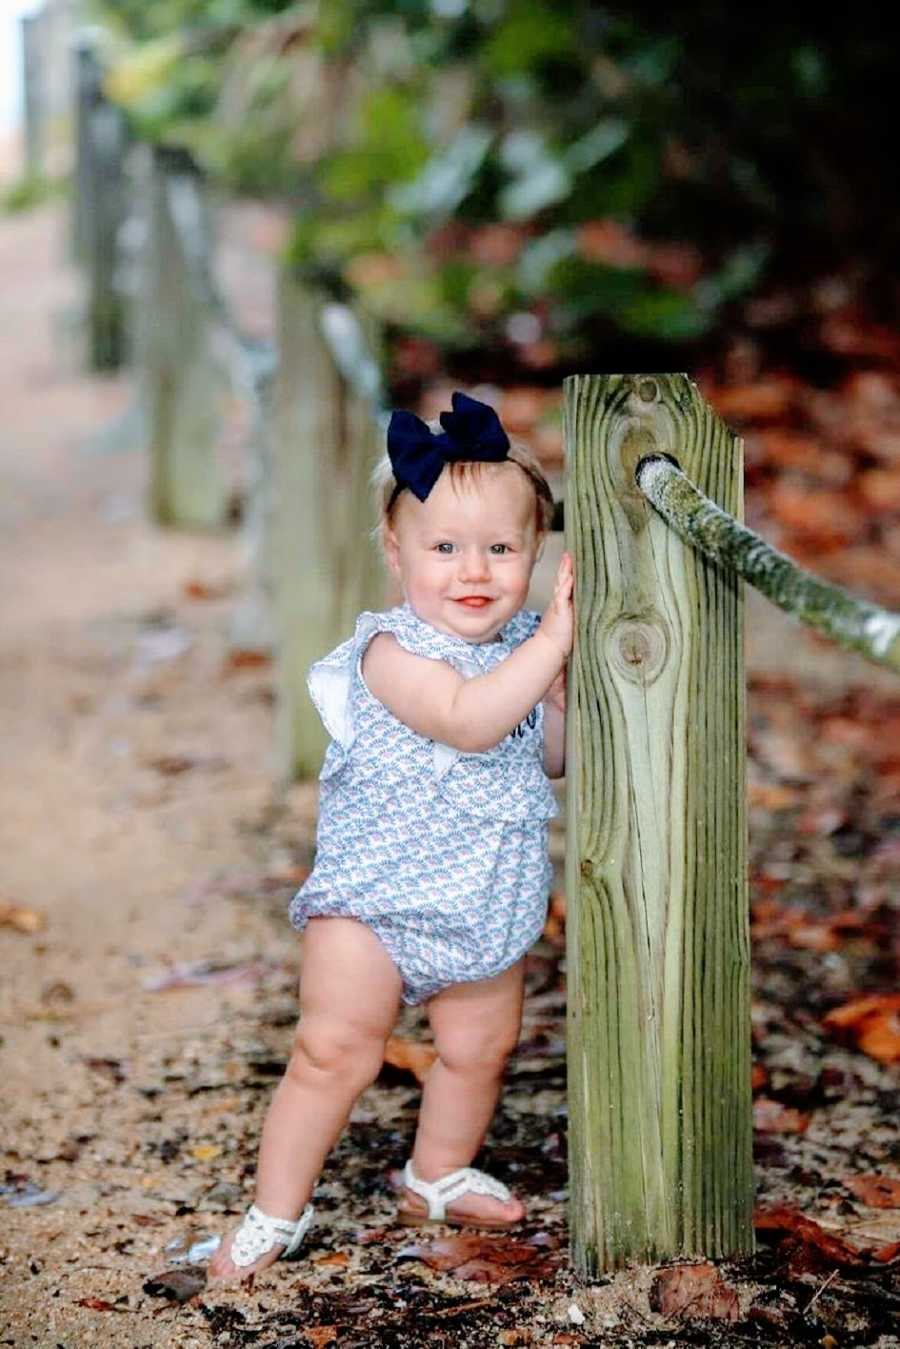 A little girl stands by a fence post